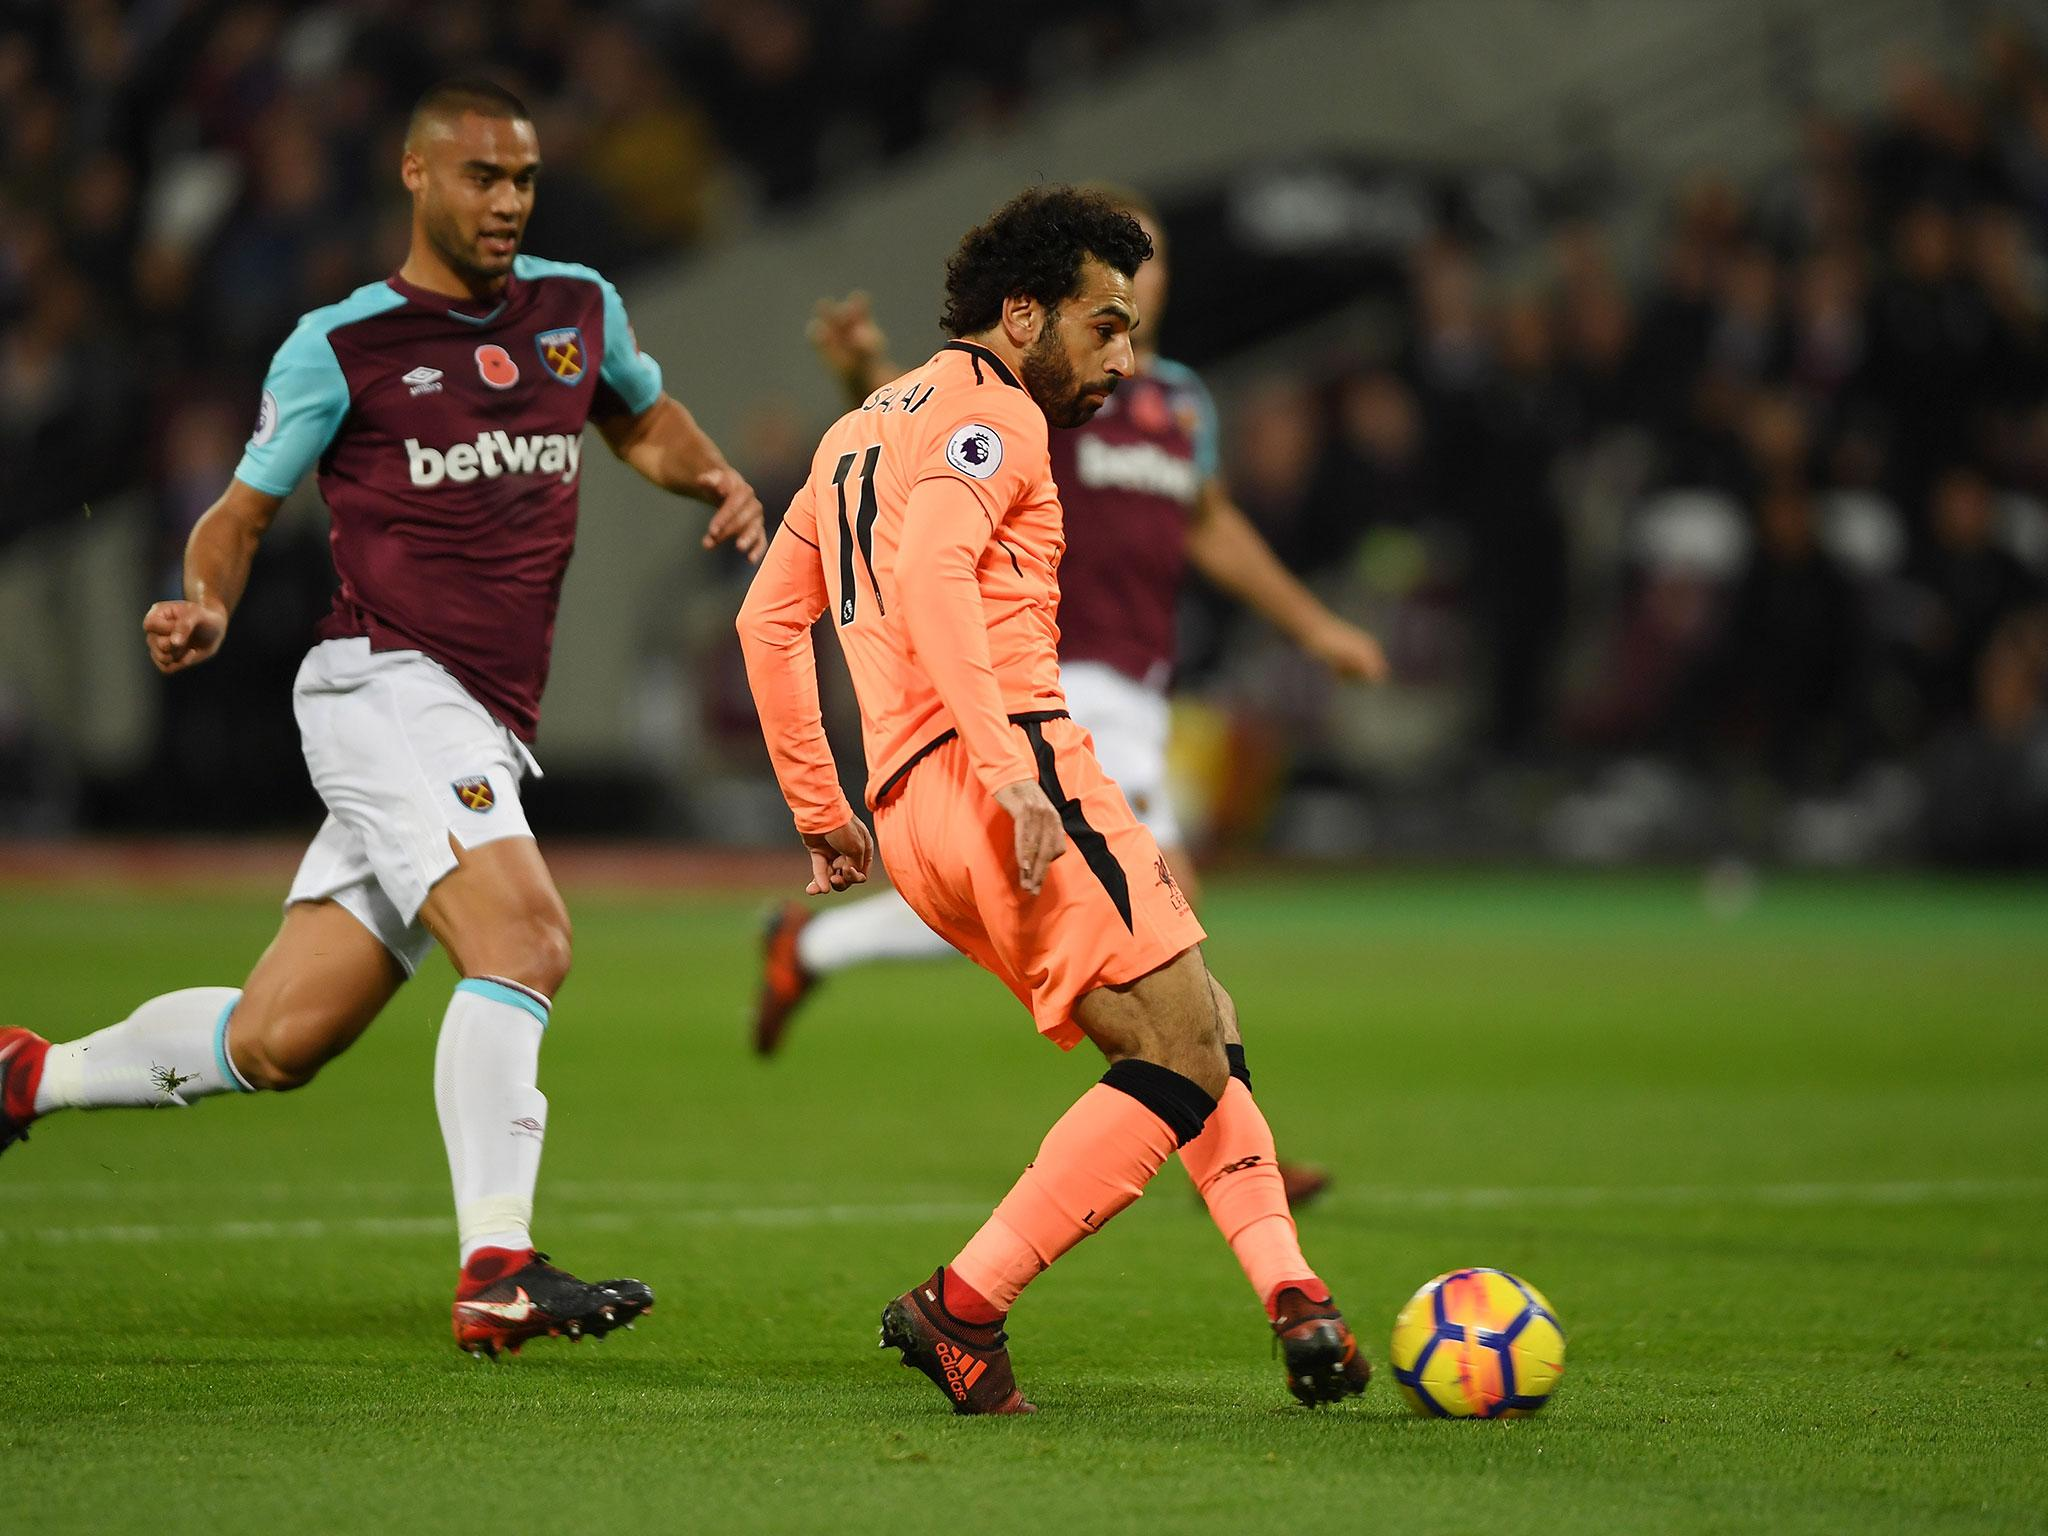 West Ham vs Liverpool Preview, Tips and Odds - Sportingpedia